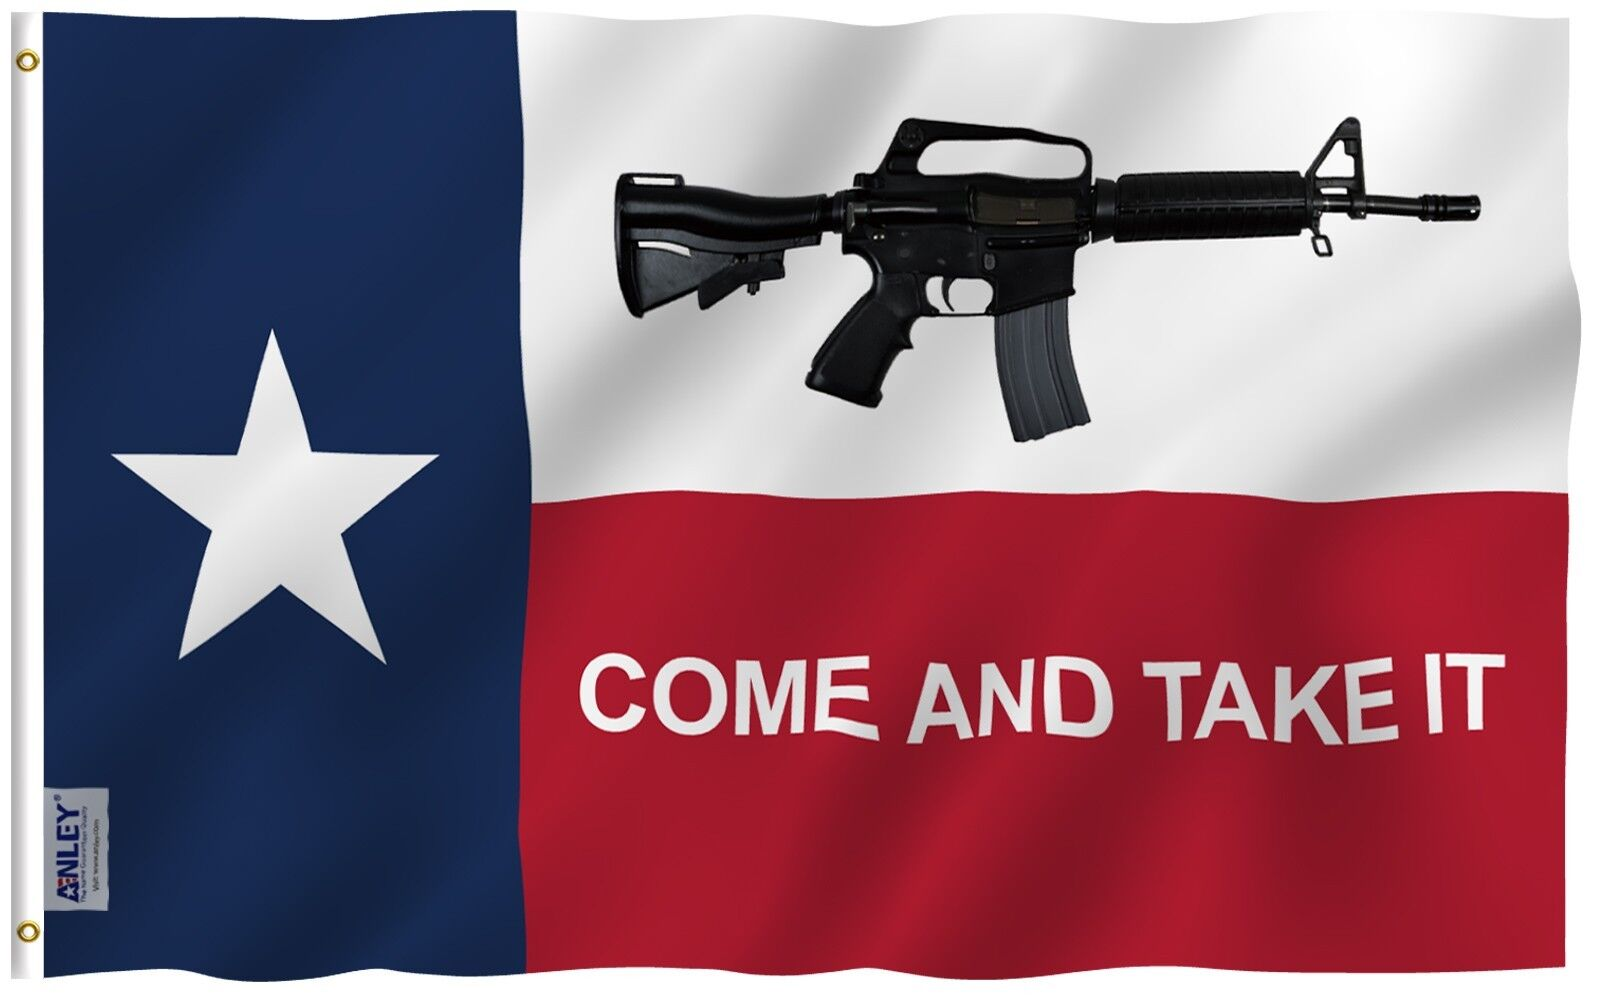 Anley Fly Breeze| 3x5 Foot Come And Take It Texas Flag, Poly